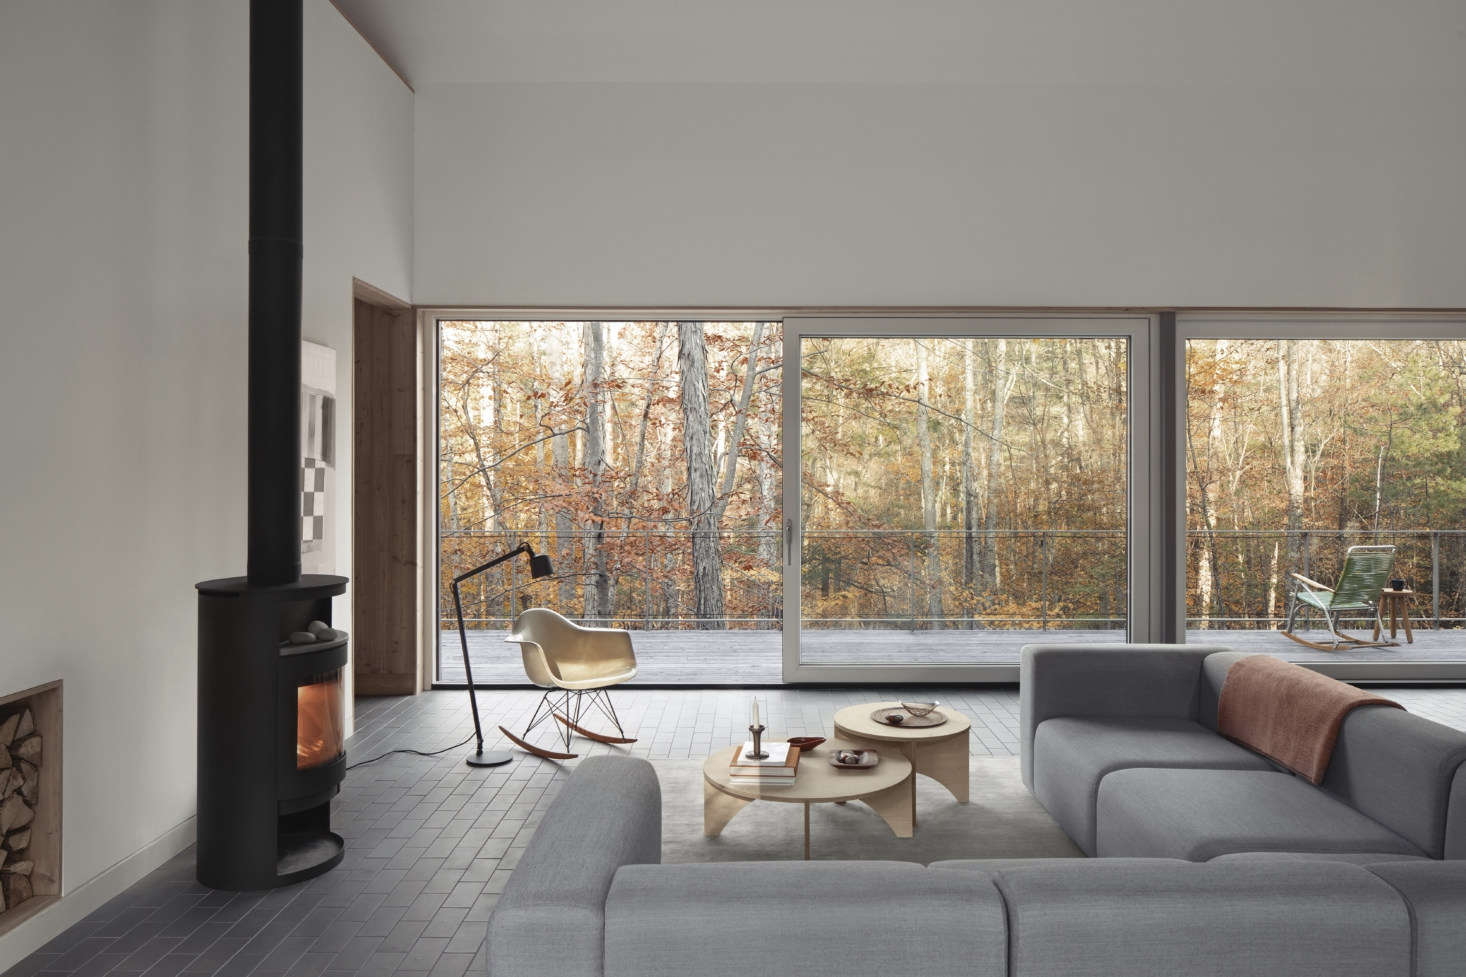 The house overlooks woodland— the interior and exterior colors were selected to blend with the outdoors. Towards that end, the entire main floor is lined with Summitville quarry tile in rock-like Elephant Gray. &#8